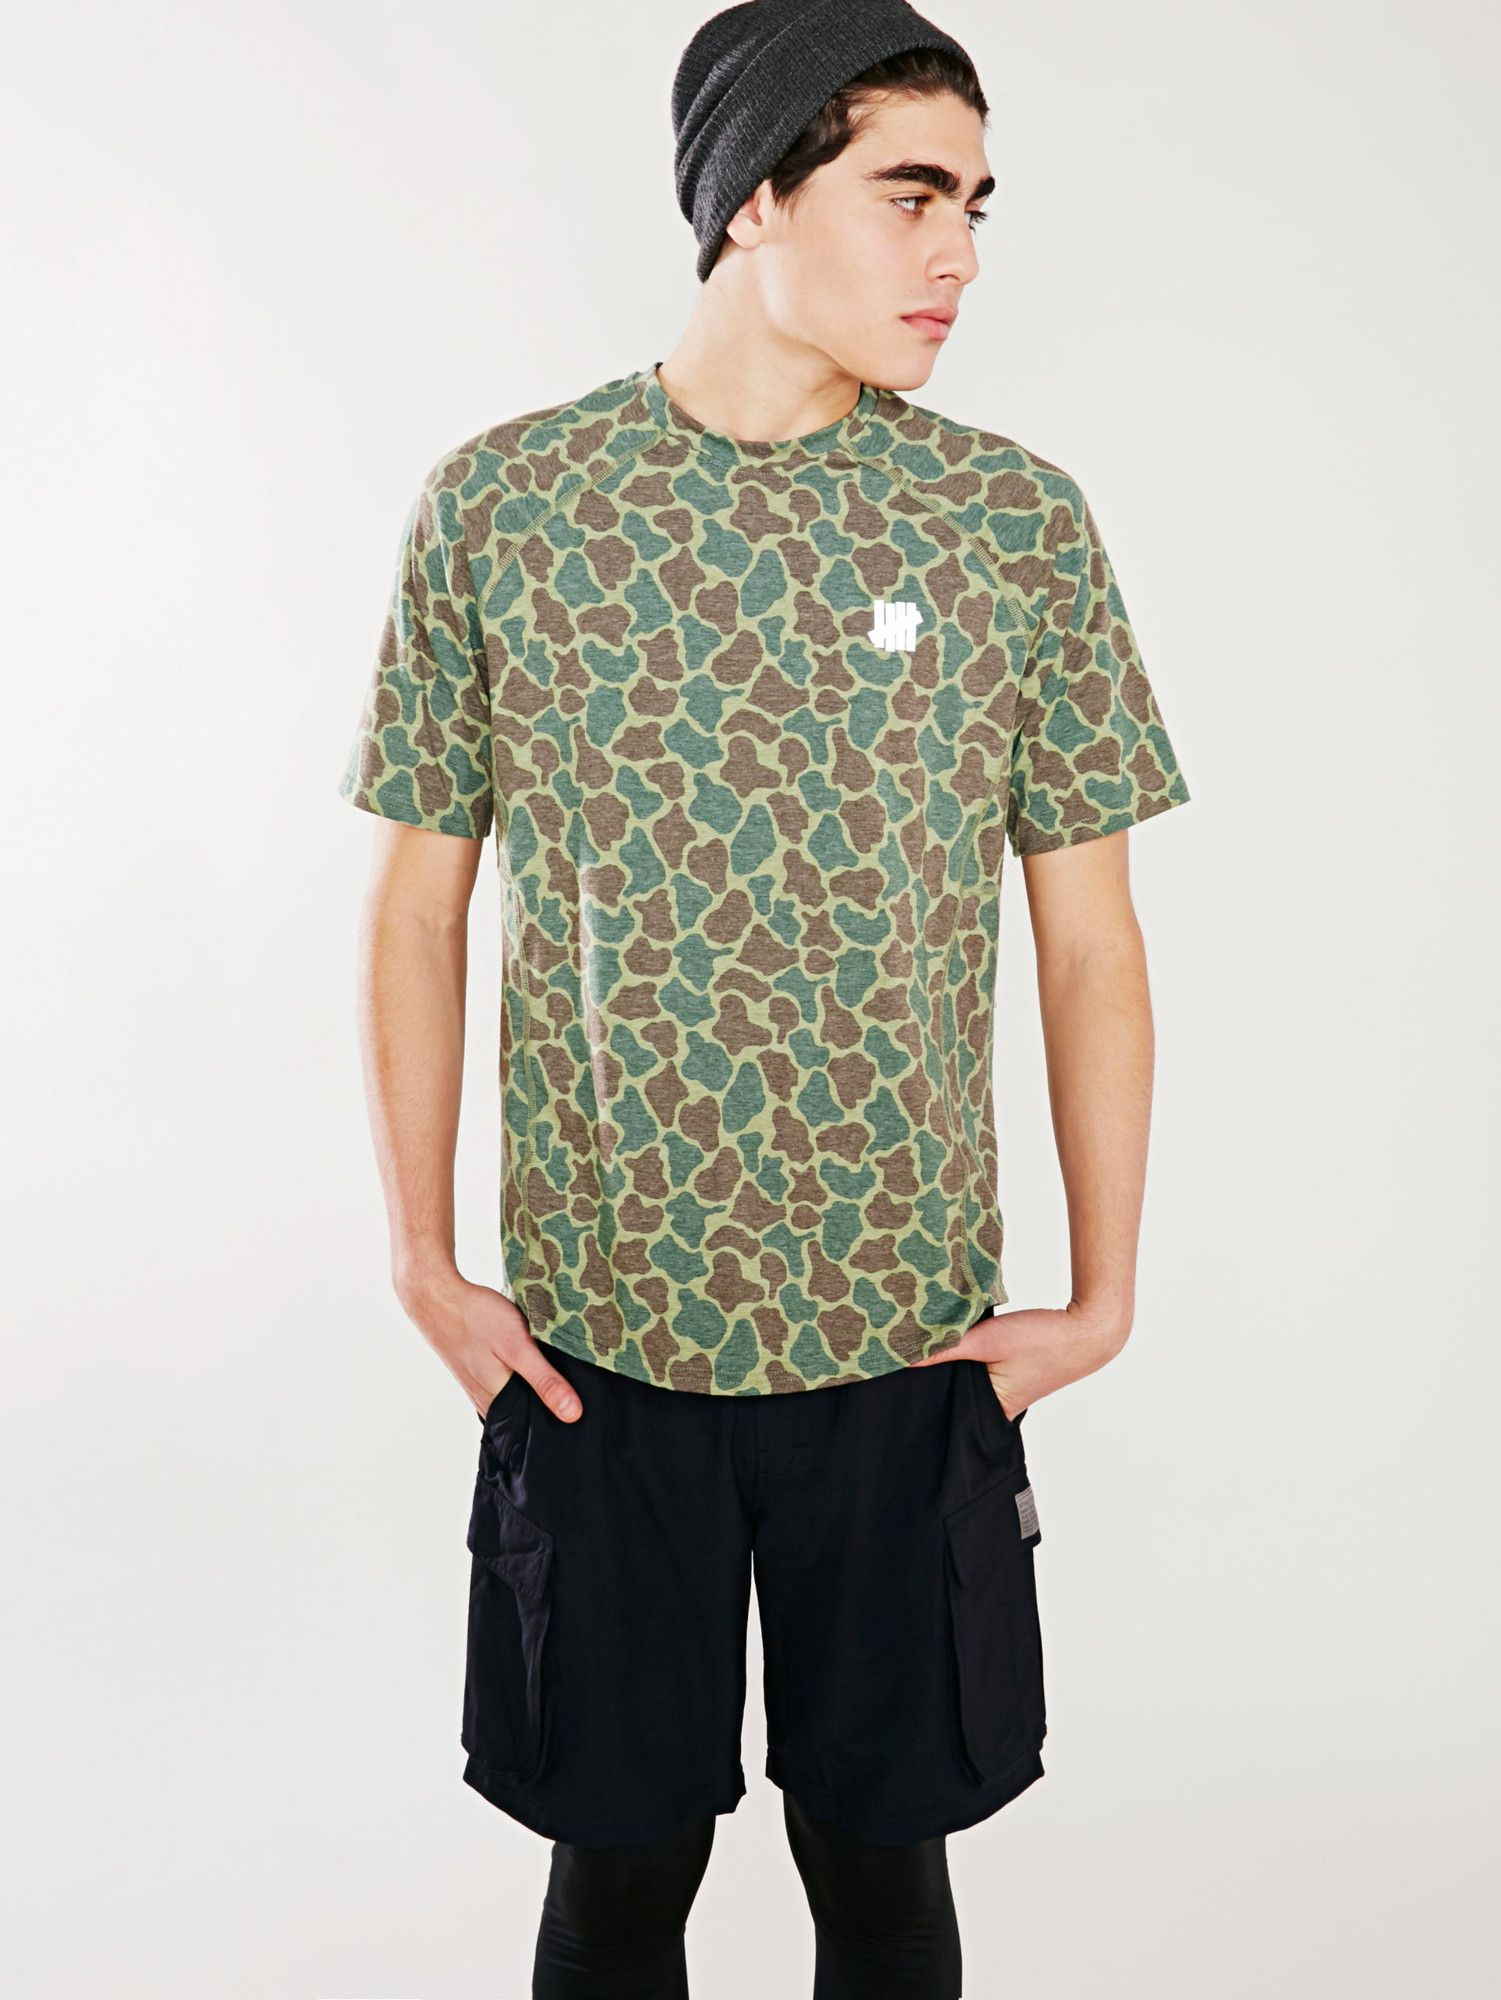 undefeated olive camo technical tee without walls men on walls coveralls camo id=12438